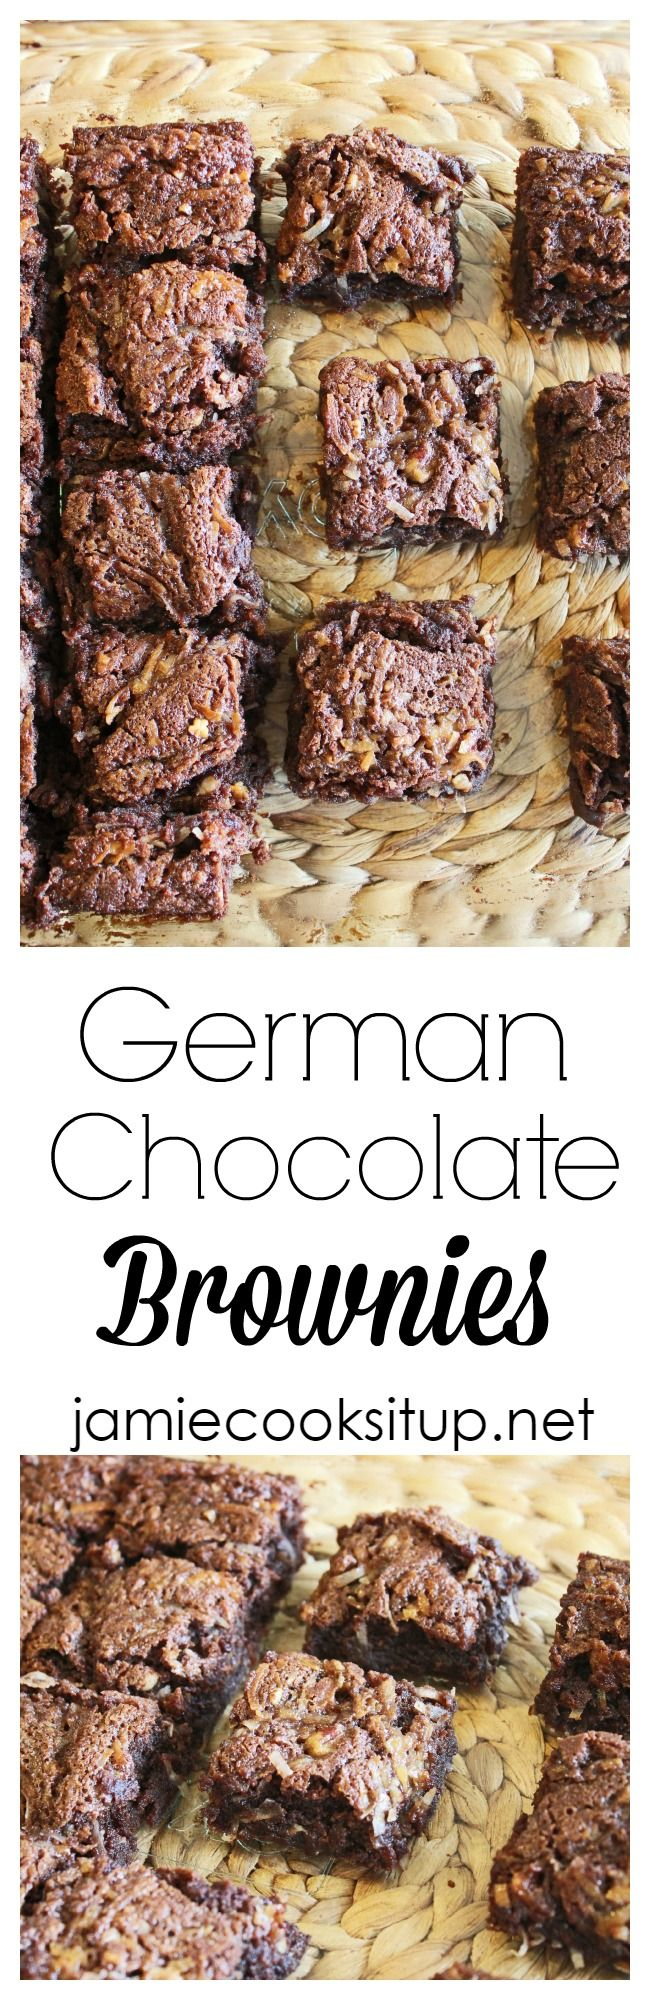 If you know me you know I love German Chocolate cake (: Turn them into brownies and omg you have me hooked!